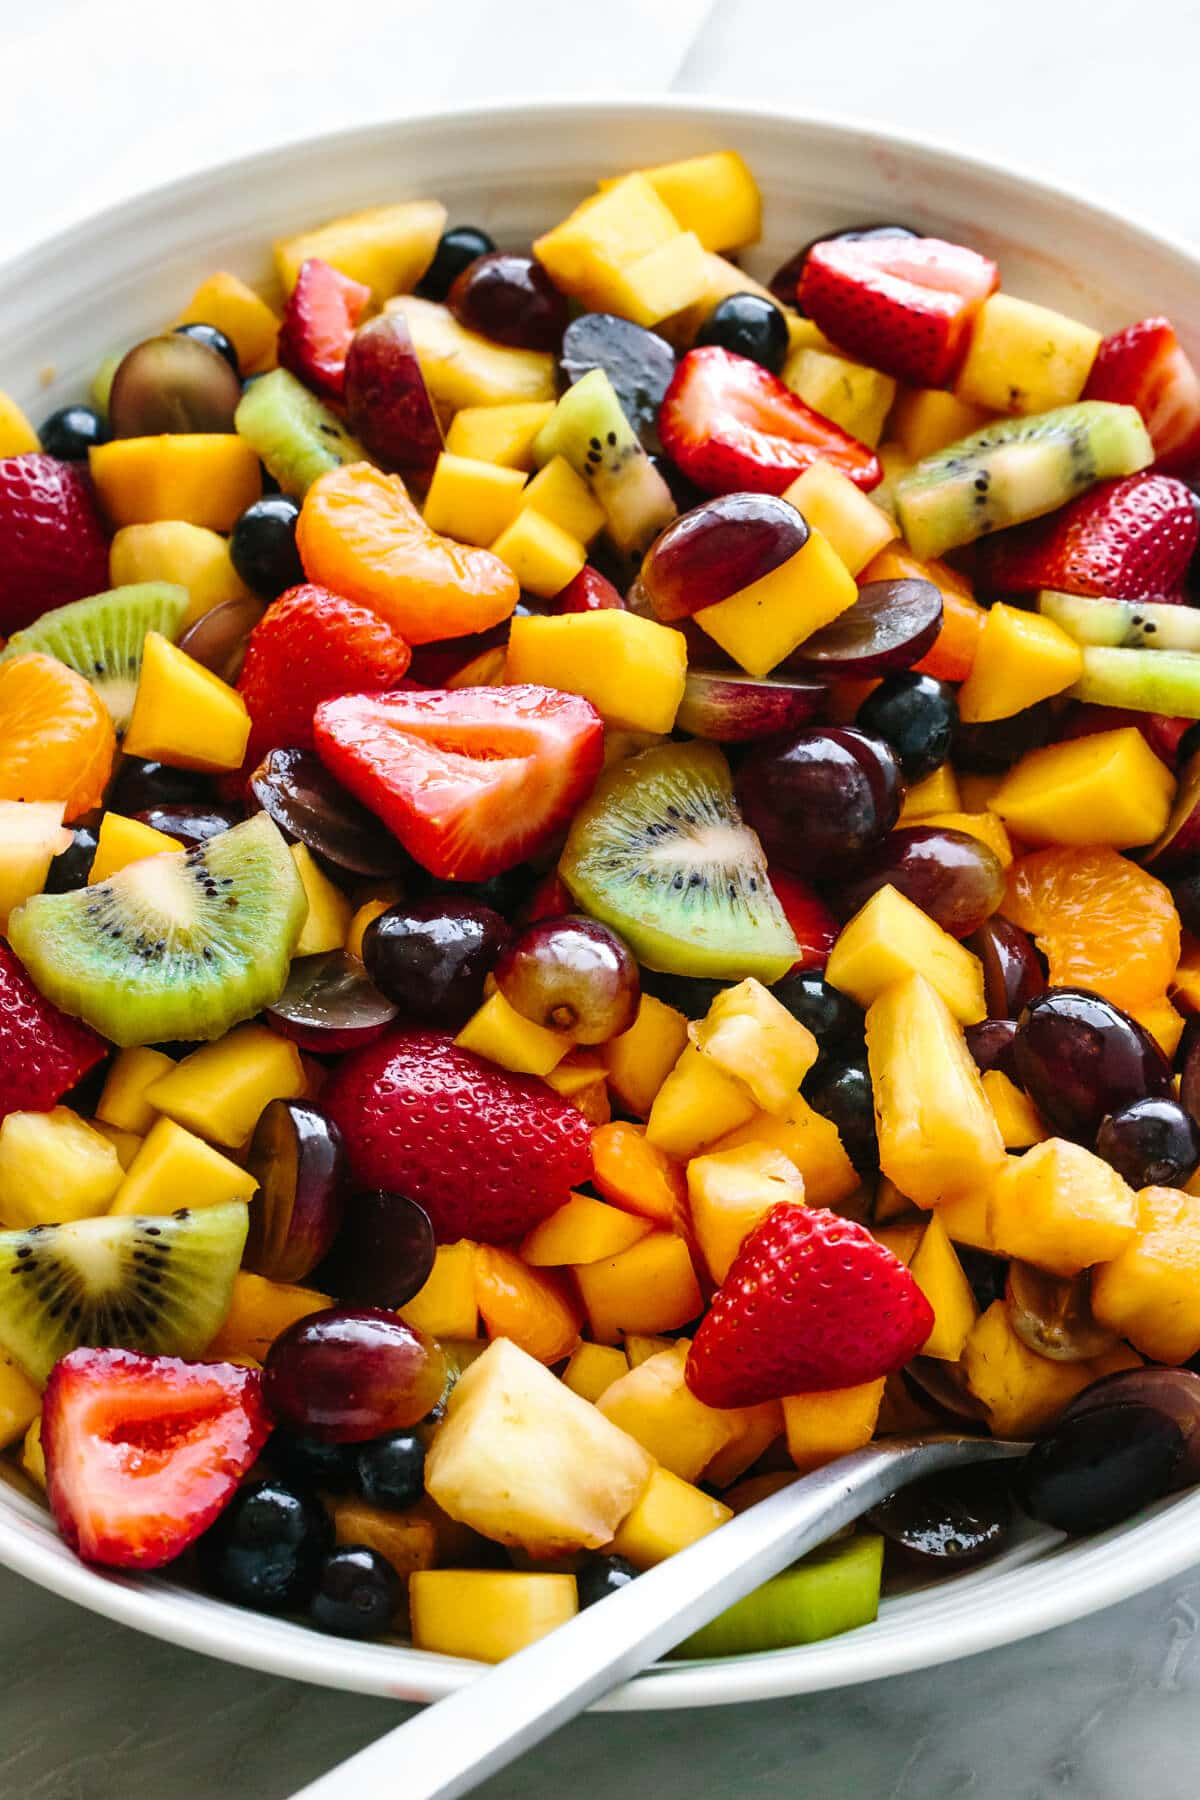 A large bowl of fruit salad with a spoon.